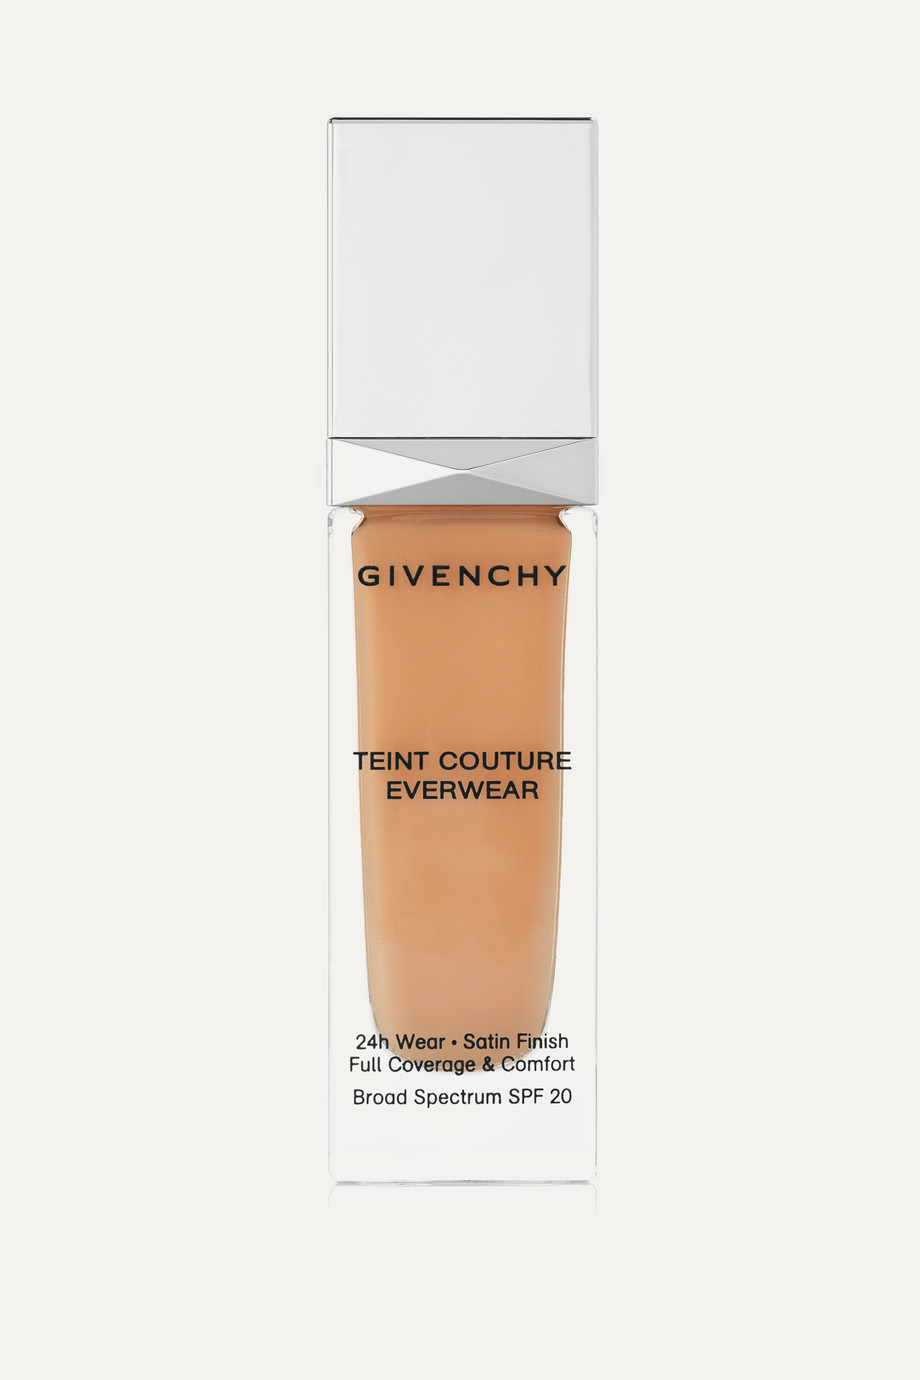 Givenchy Beauty Teint Couture Everwear Foundation SPF20 - Y205, 30ml